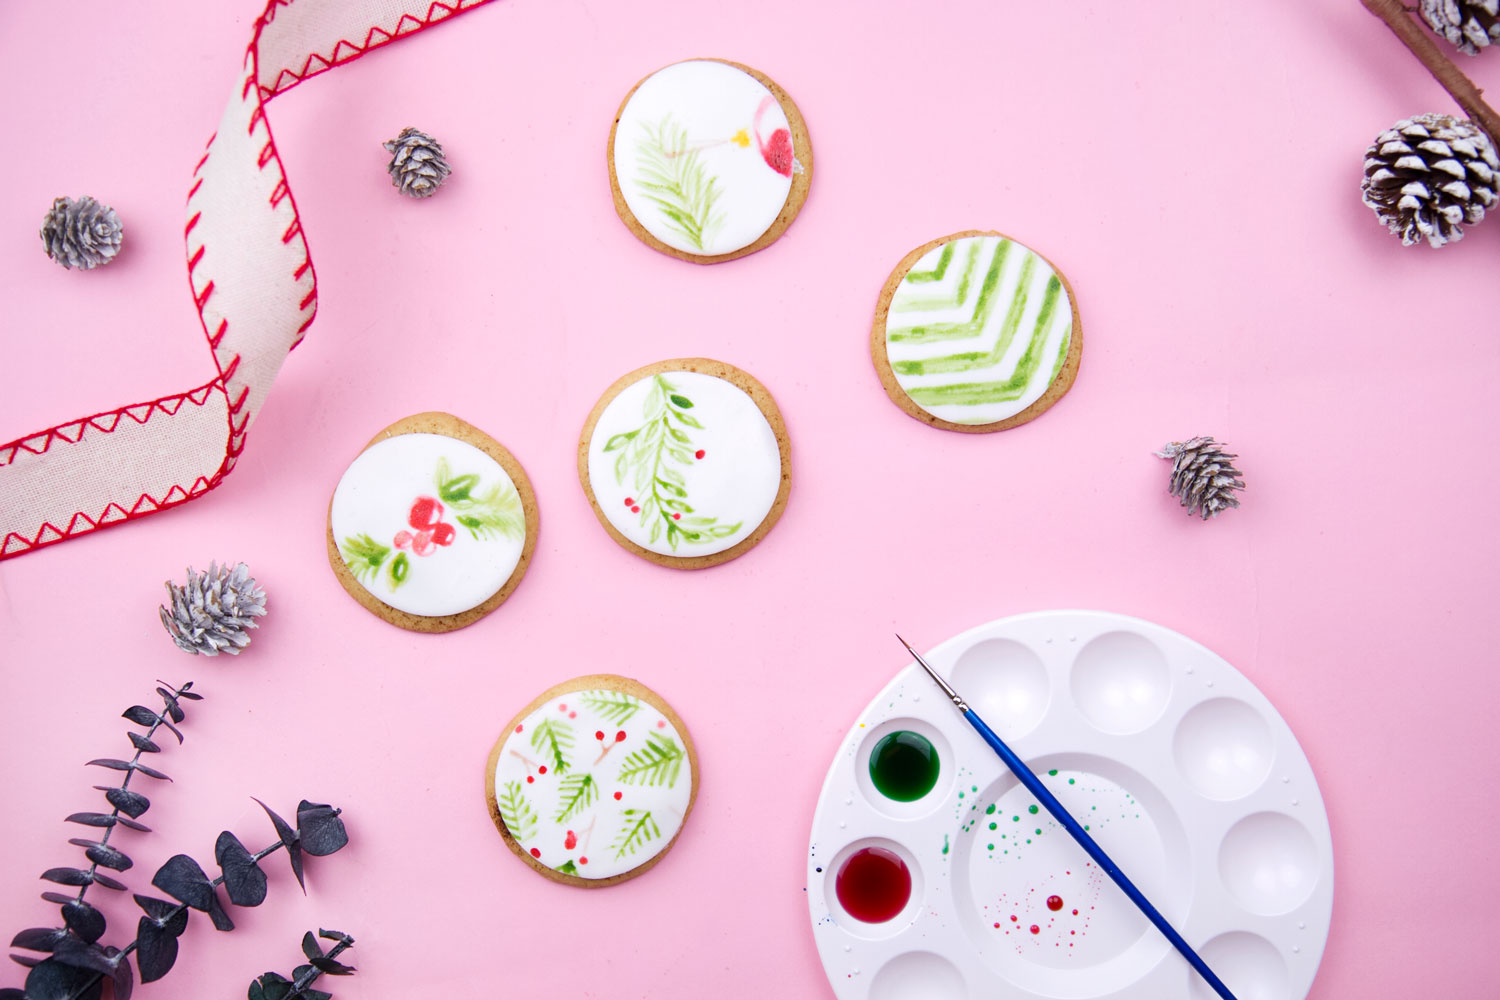 watercolor-cookies1.jpg